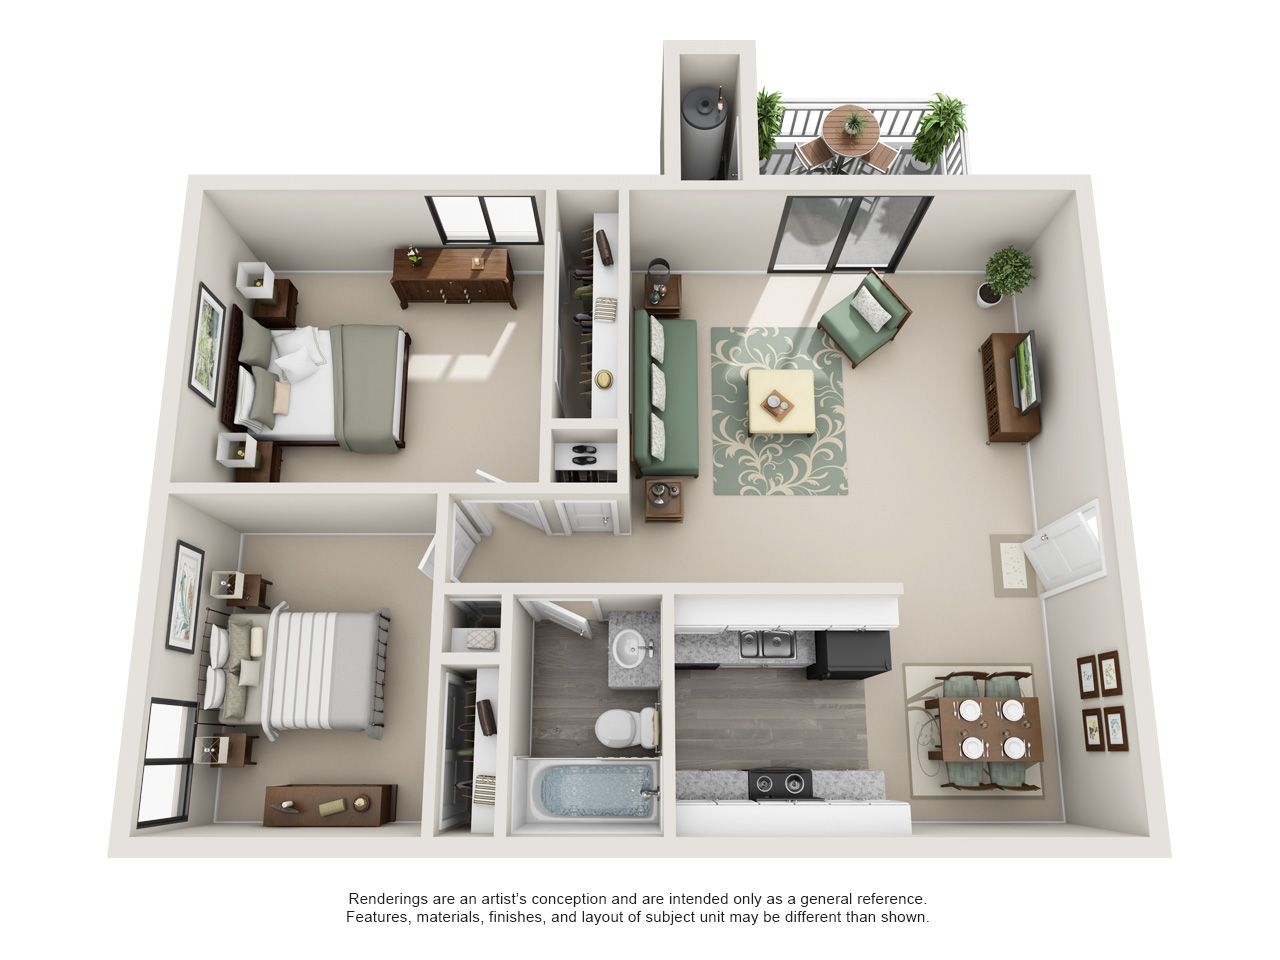 1 2 And 3 Bedroom Plans Hearthstone Apartments Aurora Colorado Apartment Steadfast House Layouts Apartment Floor Plans Bedroom House Plans